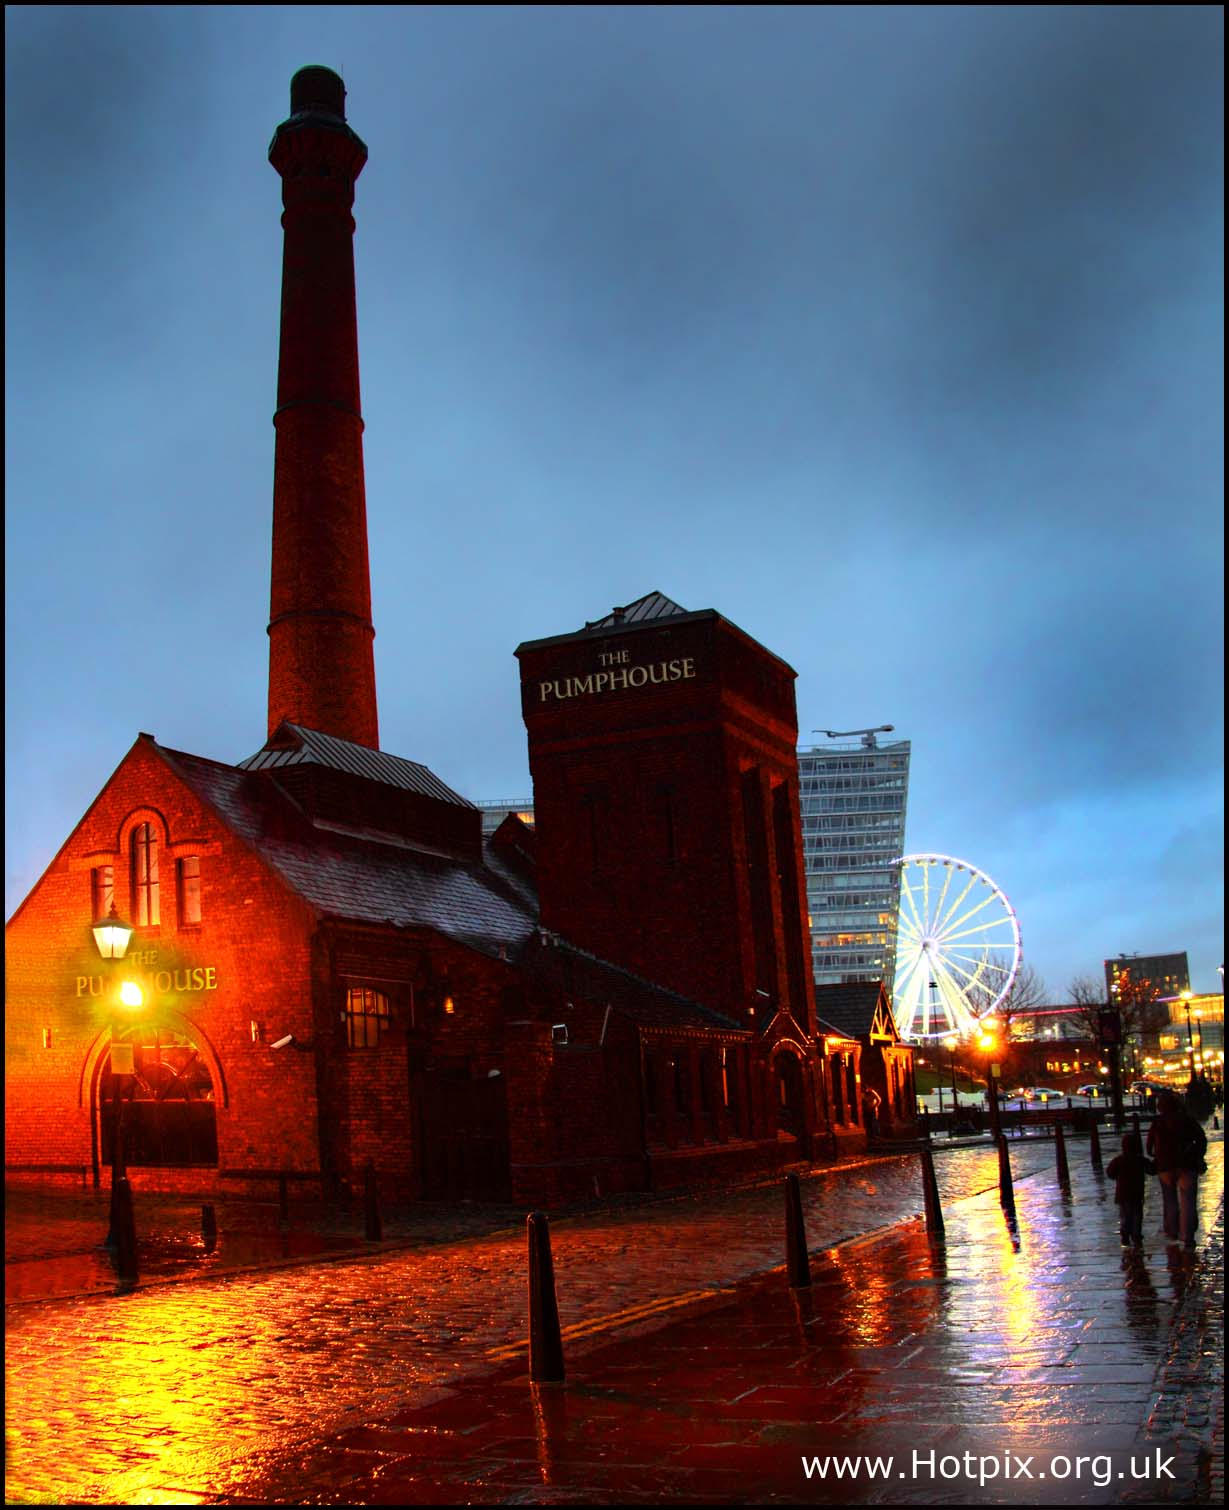 Liverpool,Albert,Dock,Dockside,UK,beatles,city,mersey,merseyside,river,pump,house,pumphouse,wet,rain,dusk,night,low,light,shot,hotpix,hotpixuk,tonysmith,tony,smith,blue,sky,warm,cobbles,stones,cobble,tate,gallery,maritime,museum,this photo rocks,HDR,high dynamic range,town,building,buildings,built,architecture,noche,nuit,sex,sexy